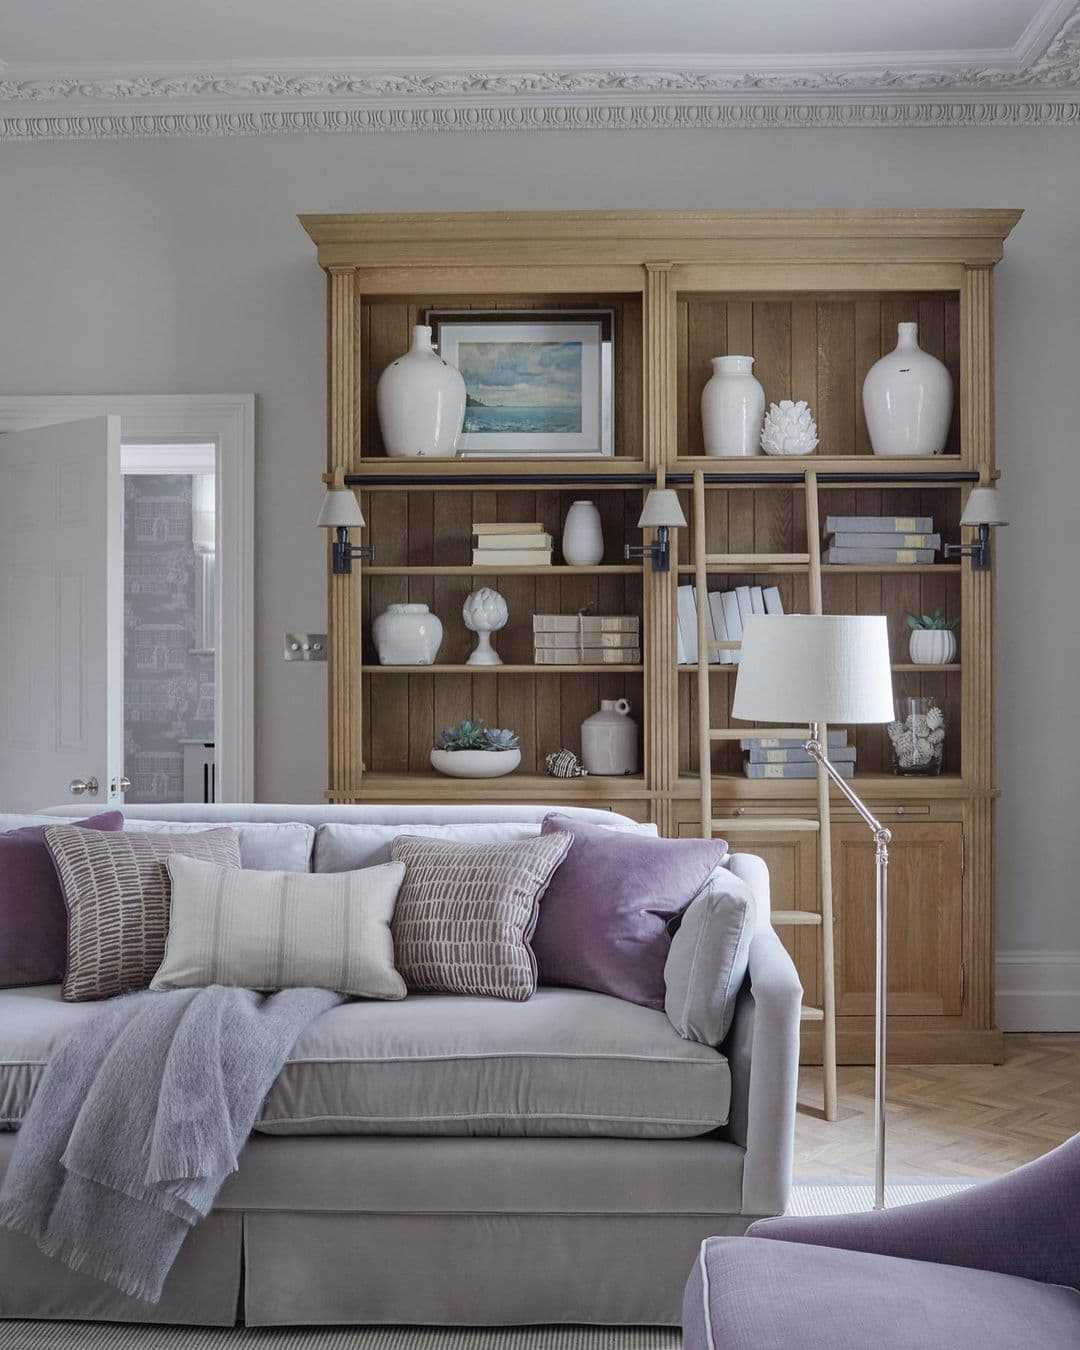 this is a living room with shabby chic and old english elements by sims hilditch